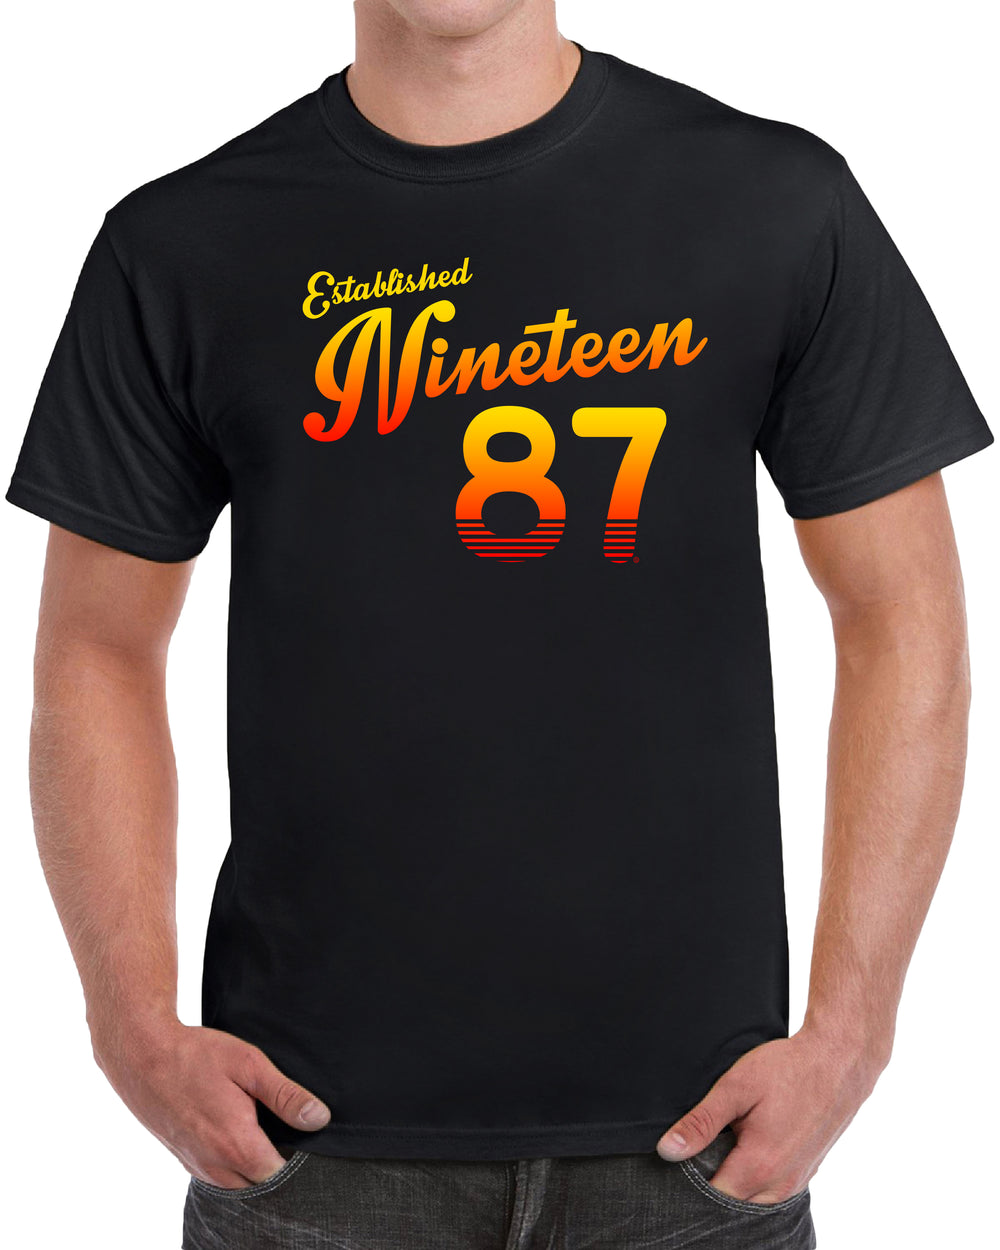 Established Nineteen 87 - Orange Print